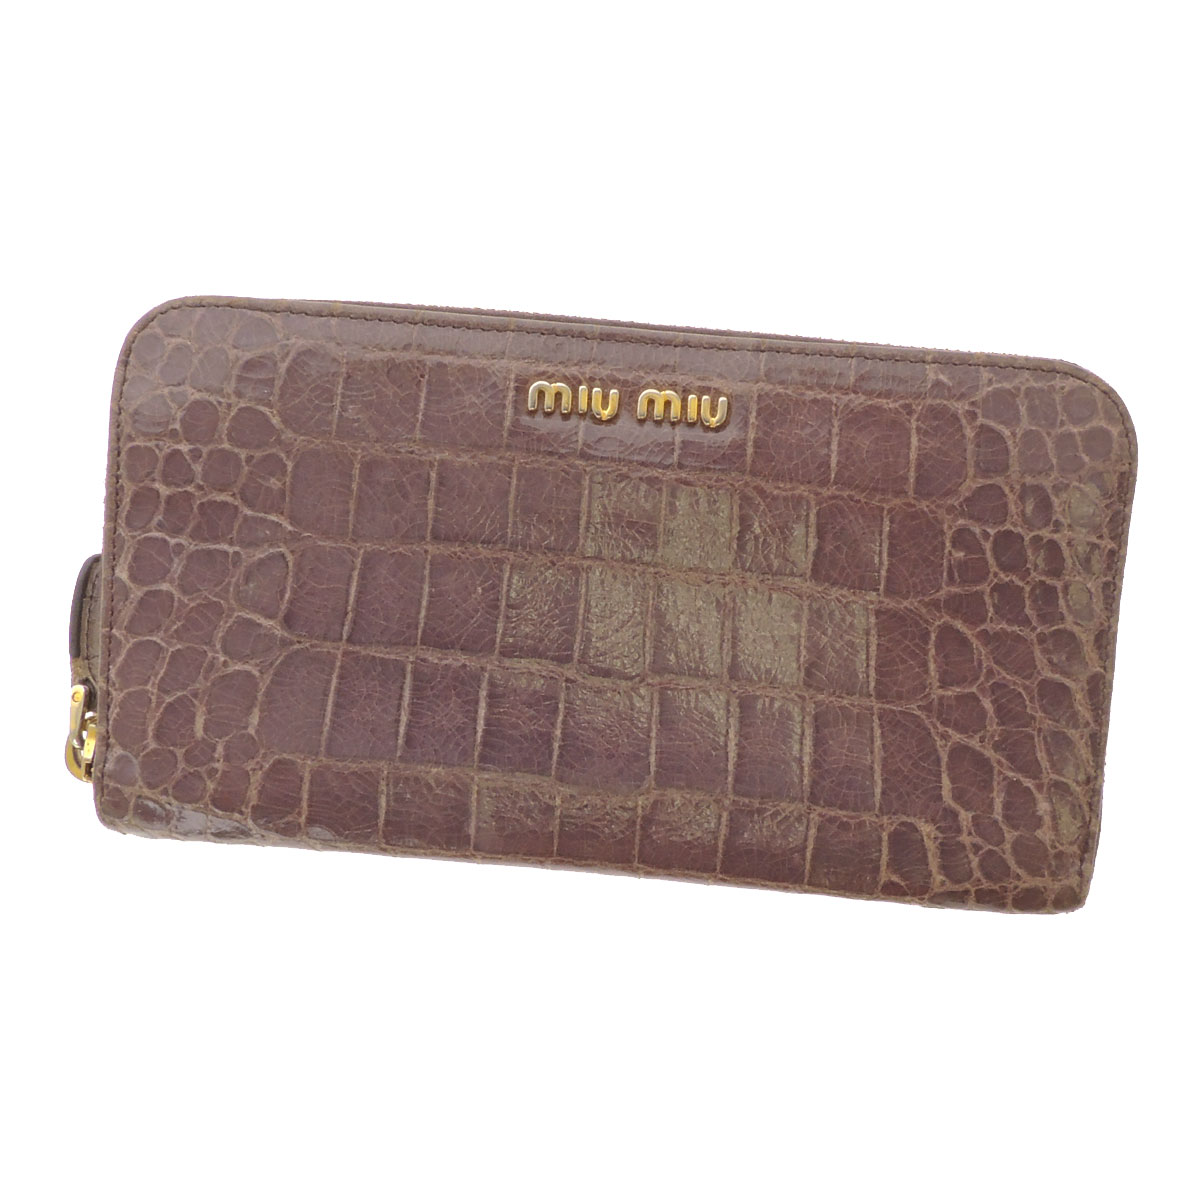 MIUMIU large zip around wallets (purses and) leather ladies